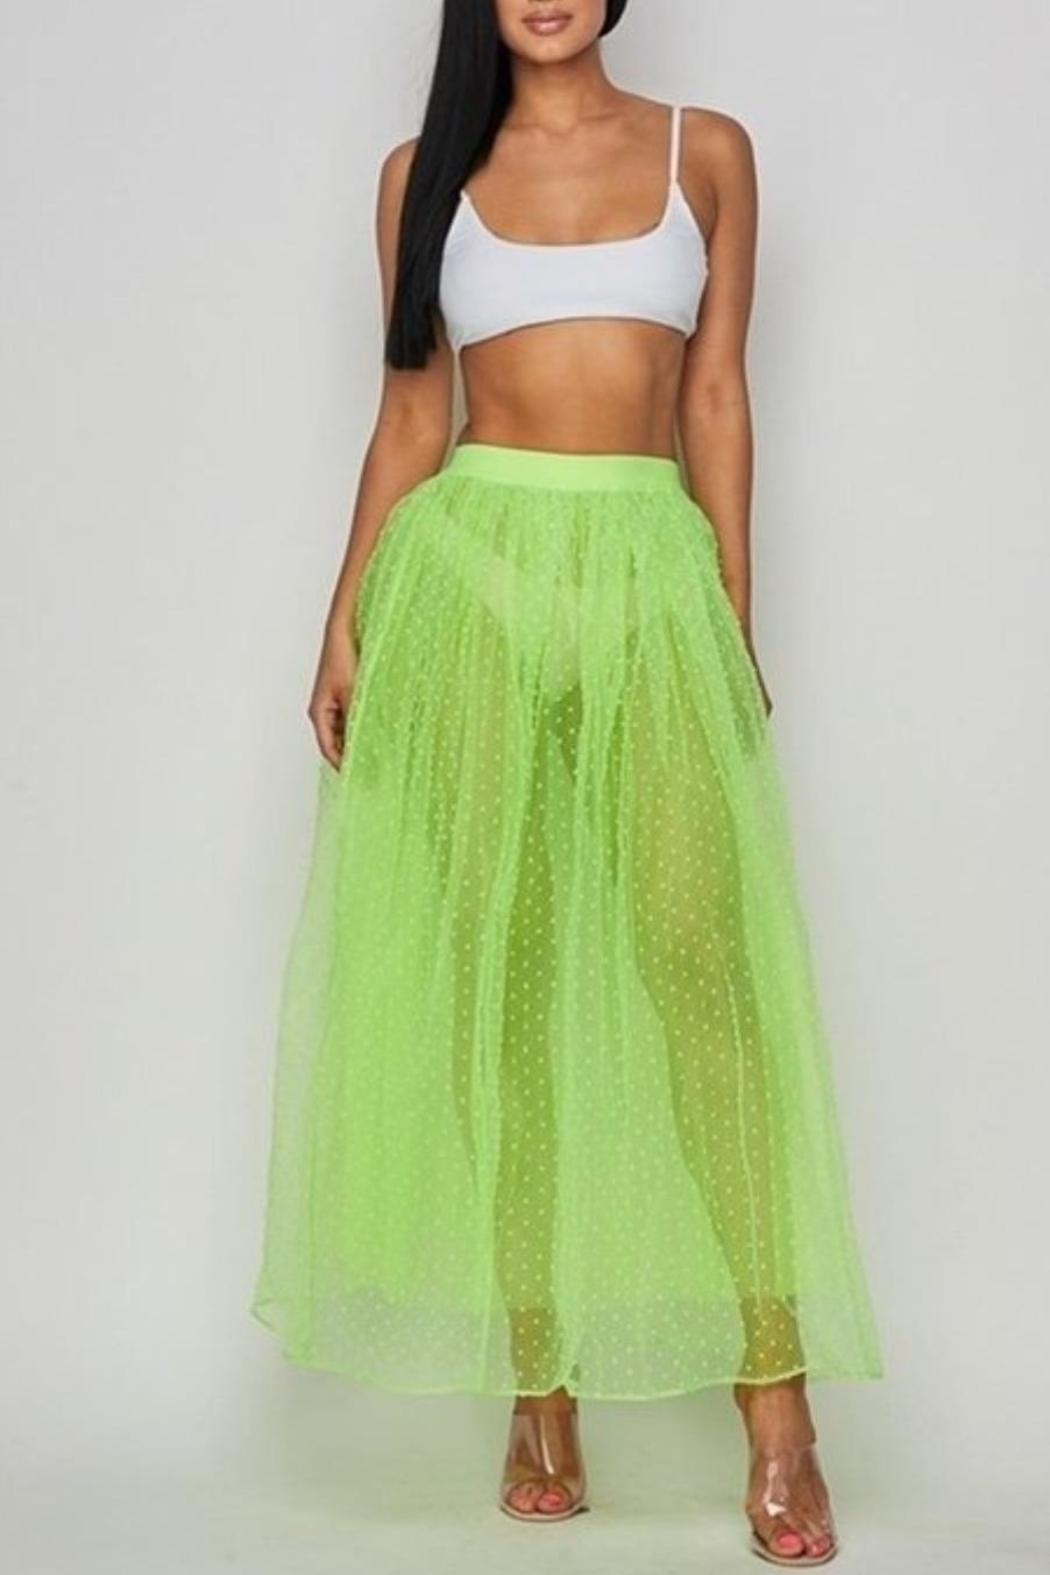 Hot & Delicious Neon Tulle Skirt - Main Image